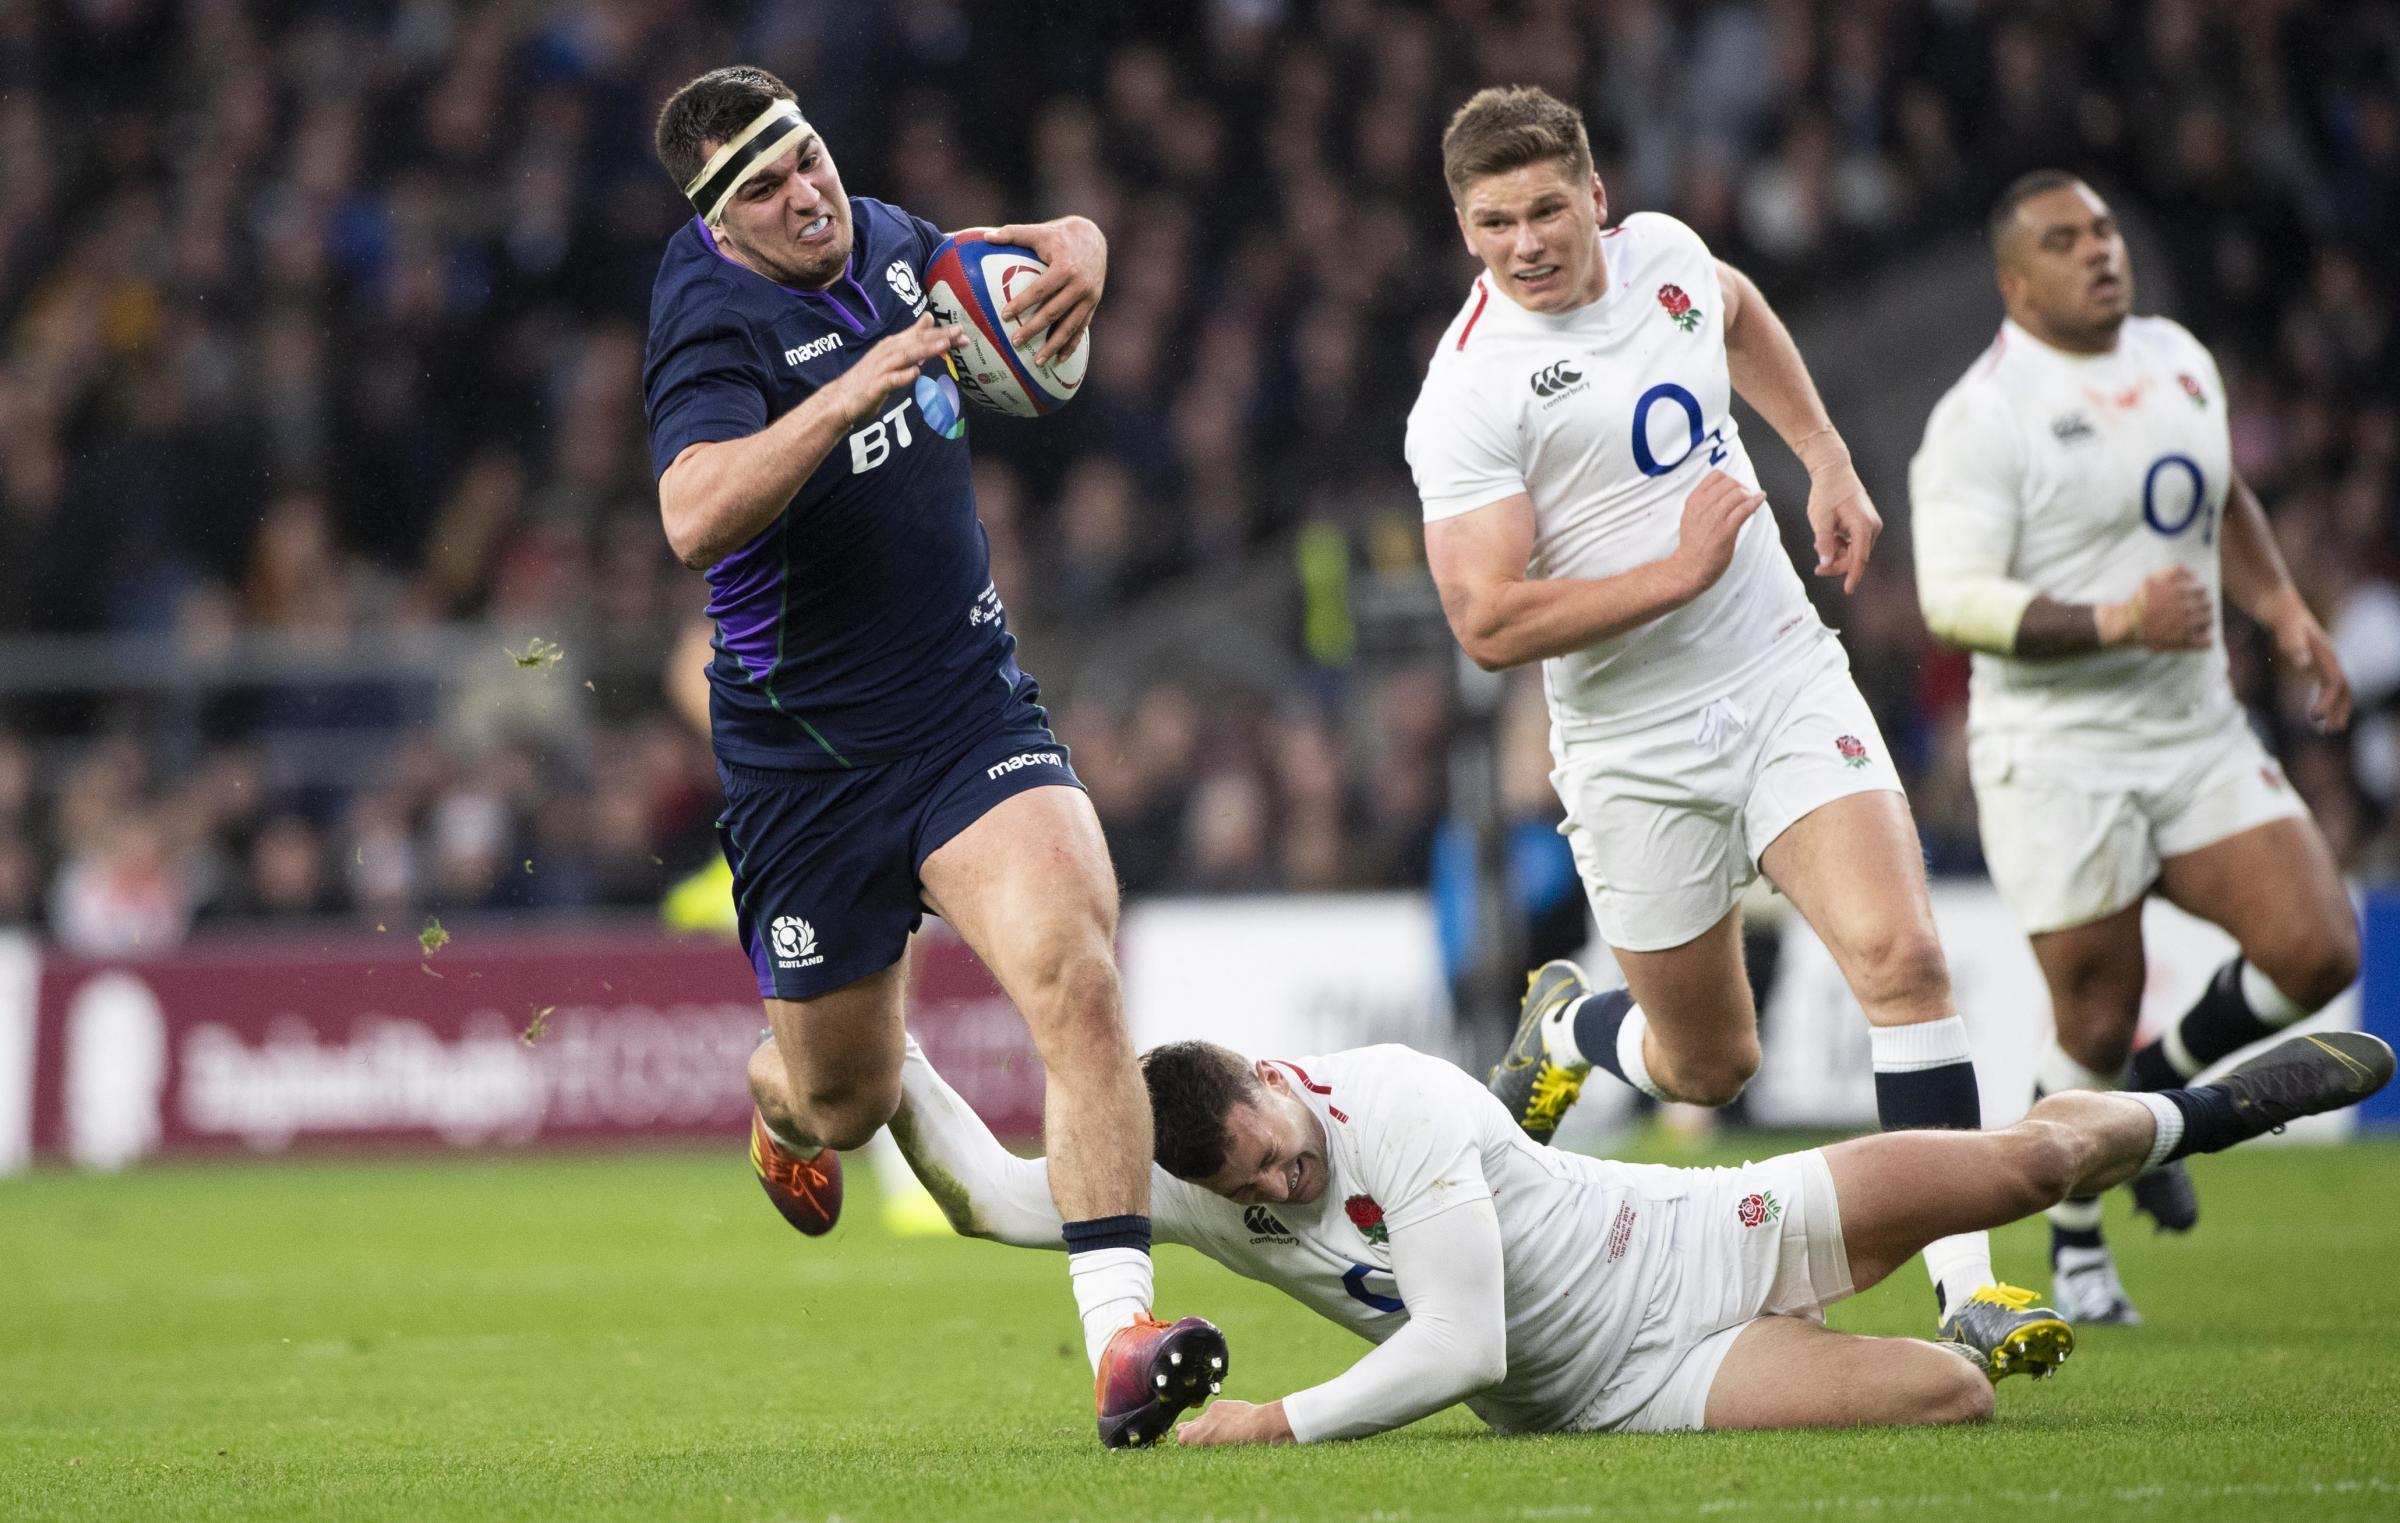 Stuart McInally in a good place to make up for 2015 World Cup disappointment